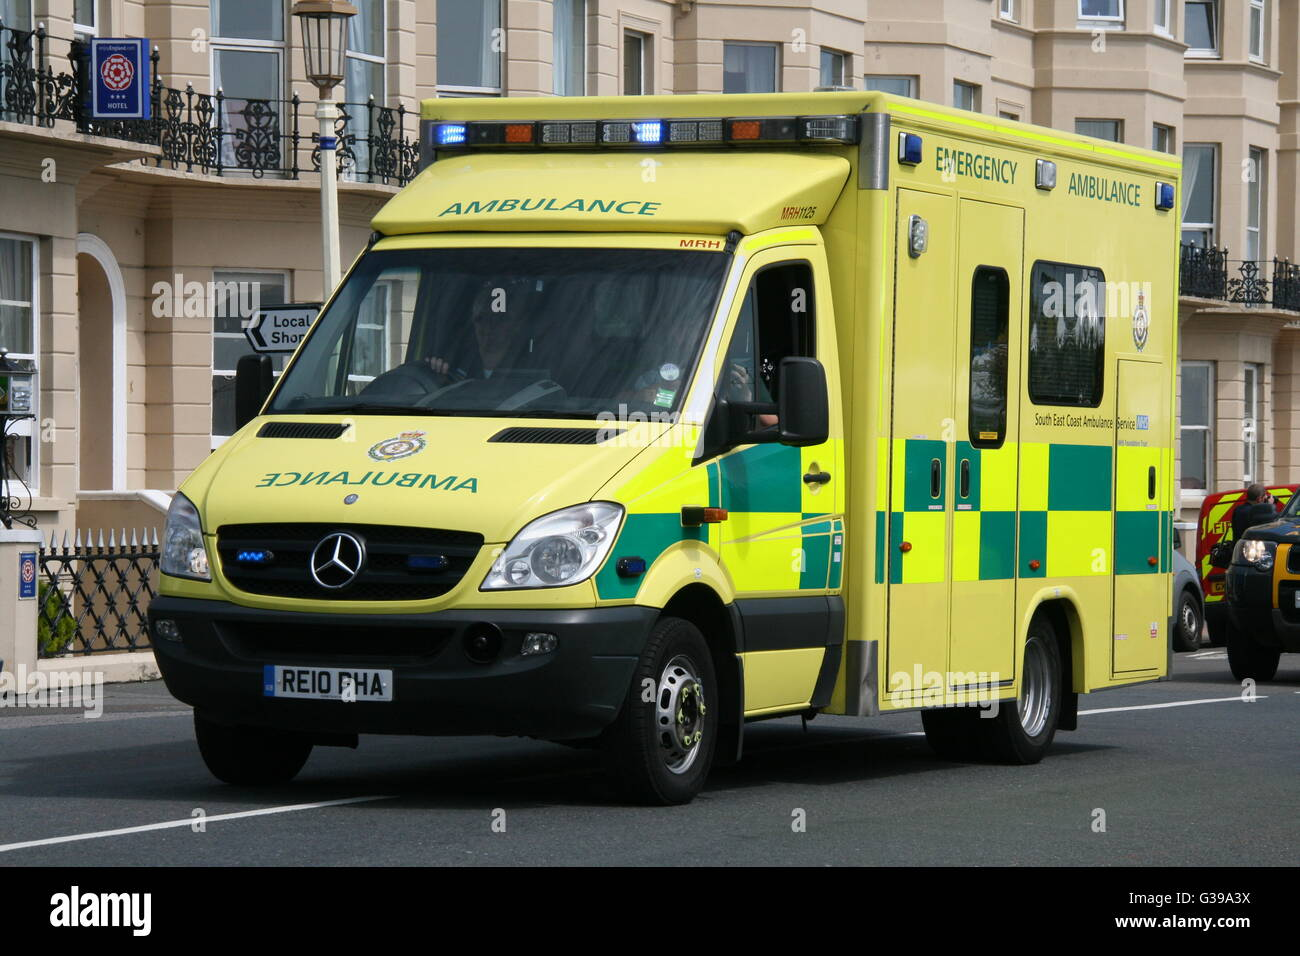 SOUTH EAST COAST AMBULANCE SERVICE MERCEDES AMBULANCE IN EASTBOURNE ON AN EMERGENCY CALL WITH BLUE LIGHTS FLASHING - Stock Image